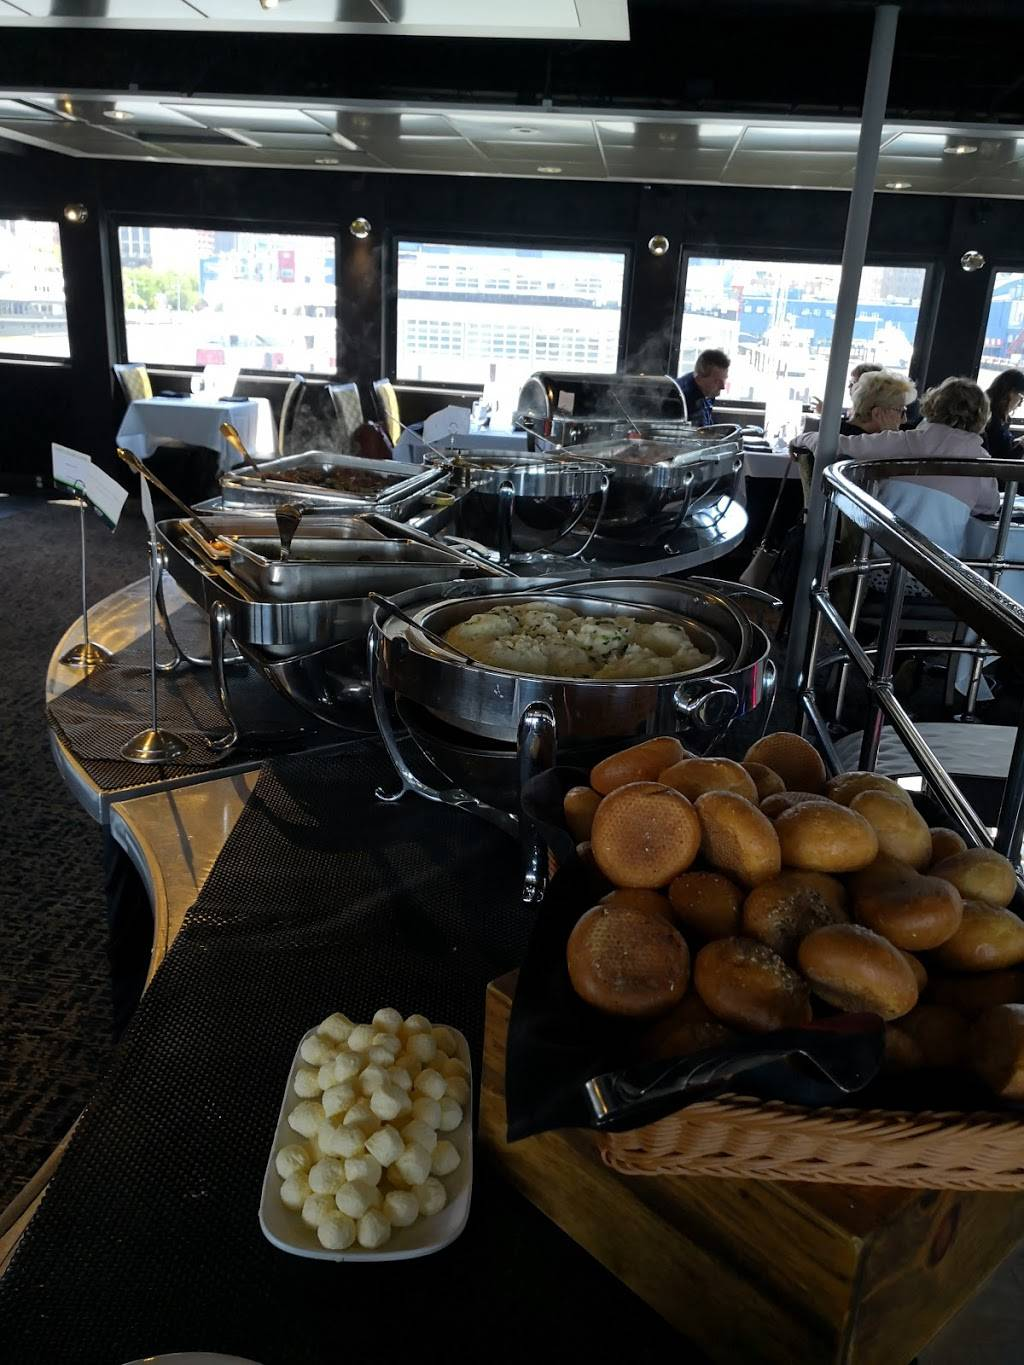 Spirit of New York by Hornblower Cruises & Events - restaurant  | Photo 4 of 10 | Address: 61 Chelsea Piers, New York, NY 10011, USA | Phone: (212) 727-2789